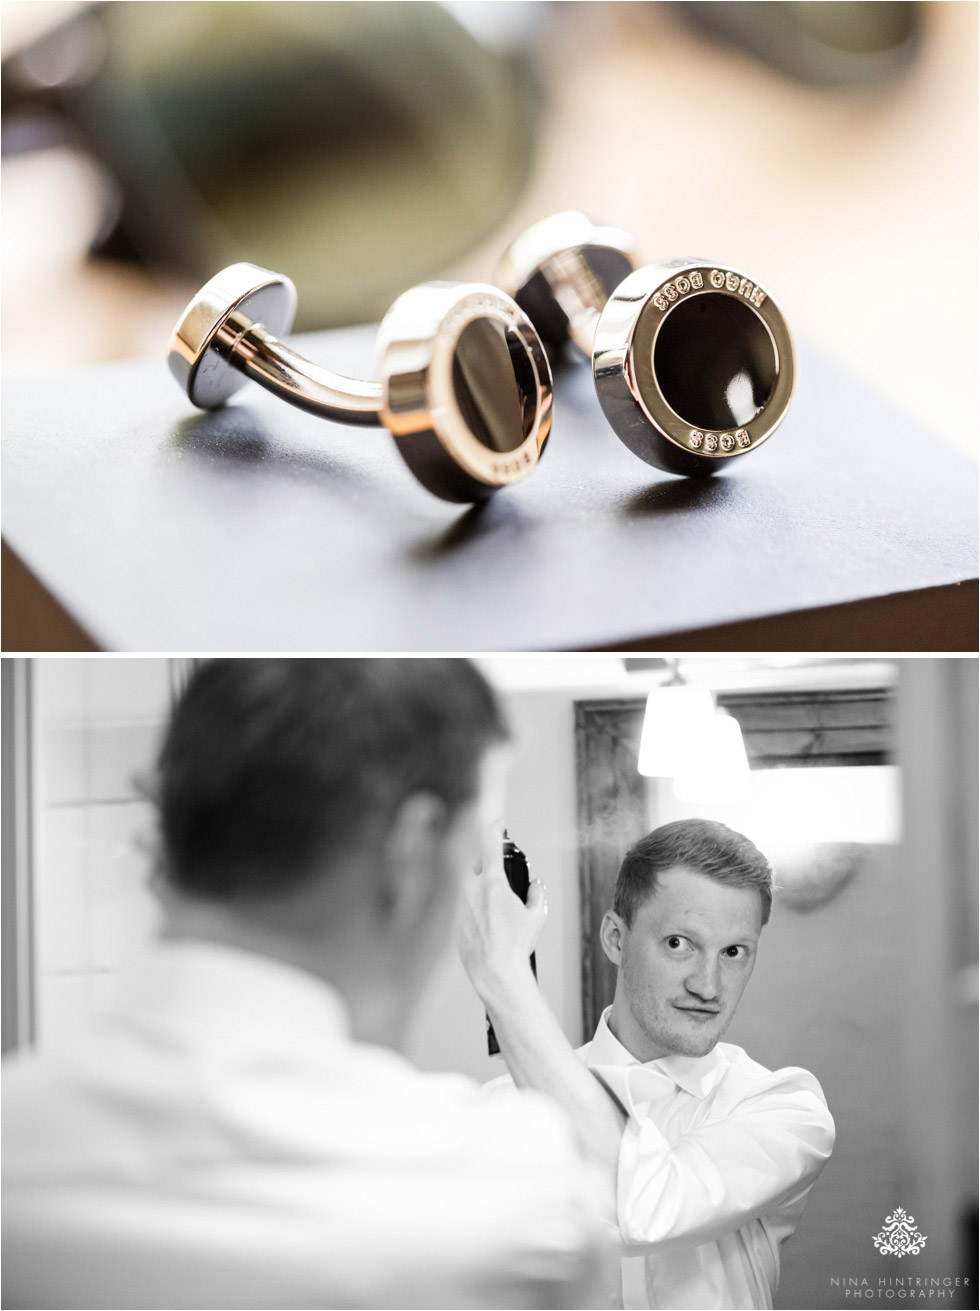 Hofgut Maisenburg Wedding with Gold & Coralline Eye Candy | Melanie & Philipp | Hayingen, Germany - Blog of Nina Hintringer Photography - Wedding Photography, Wedding Reportage and Destination Weddings